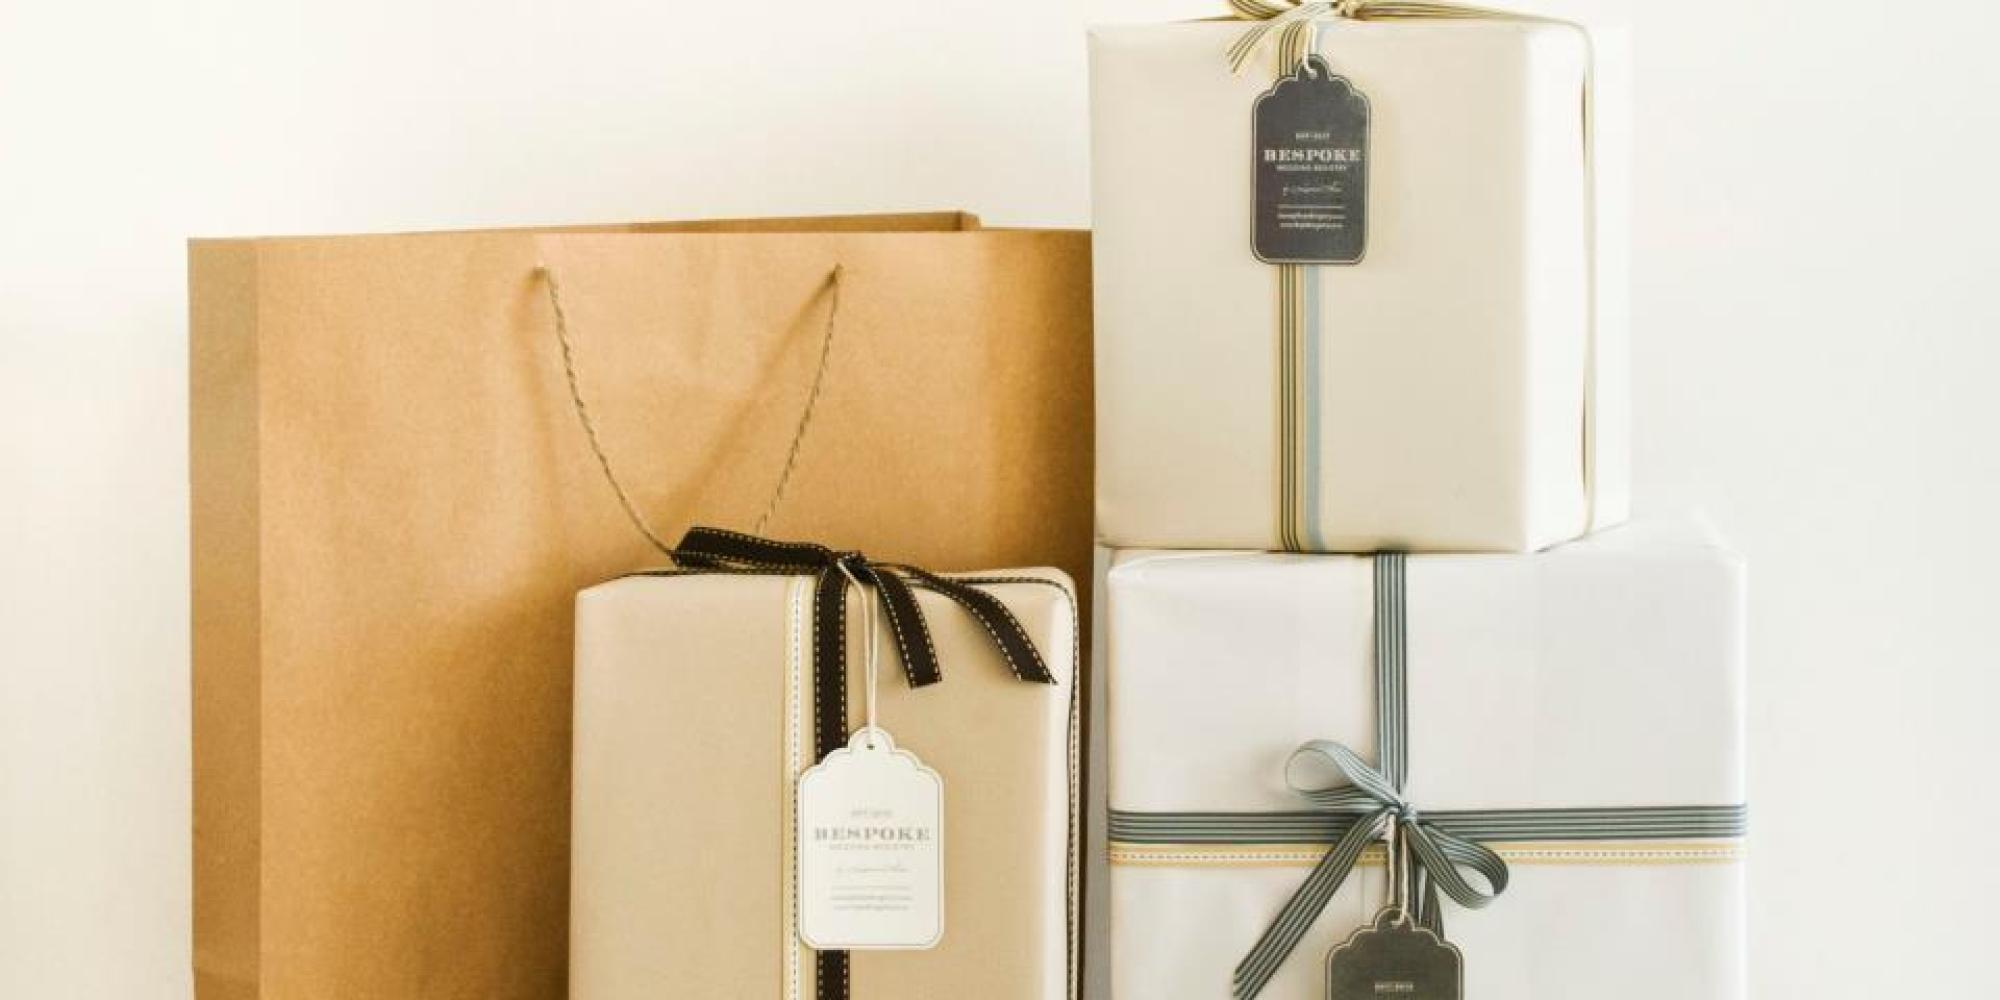 Boardmans Gift Registry Weddings: Wedding Gifts Worth Buying Off-Registry